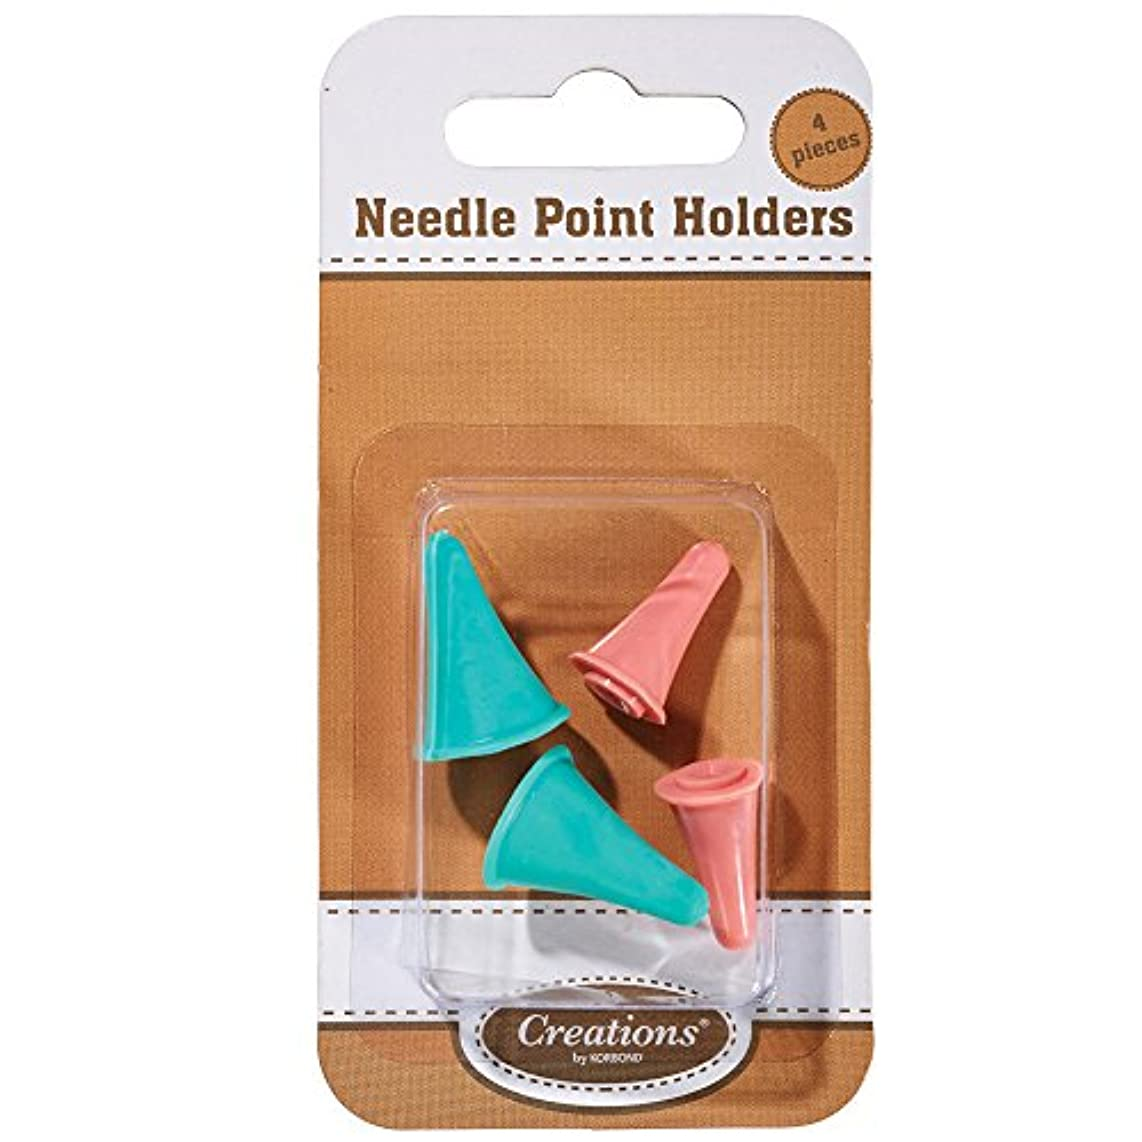 Creations Needle Point Holders